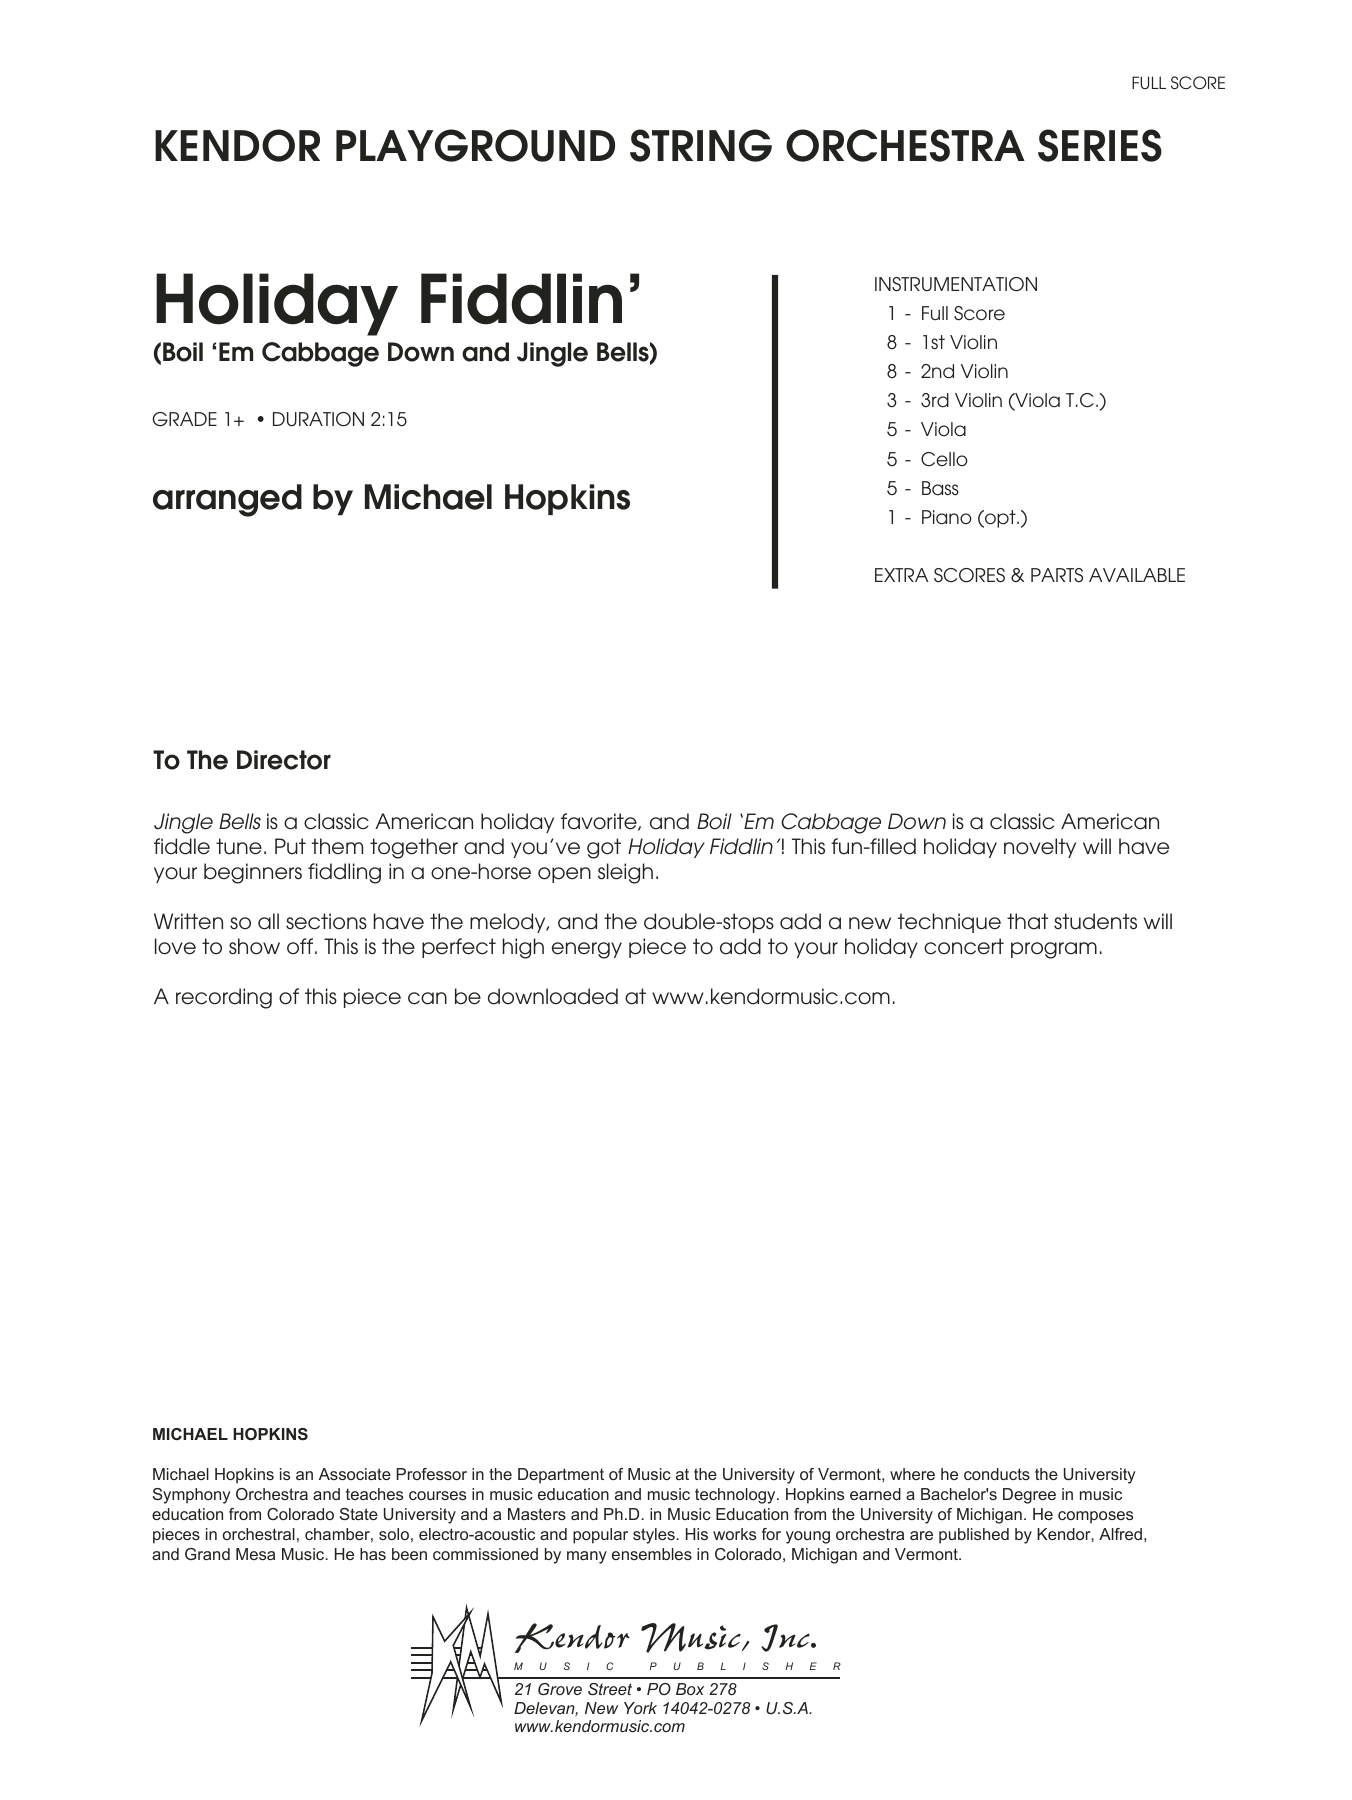 Holiday Fiddlin' (Boil 'Em Cabbage Down and Jingle Bells) - Full Score